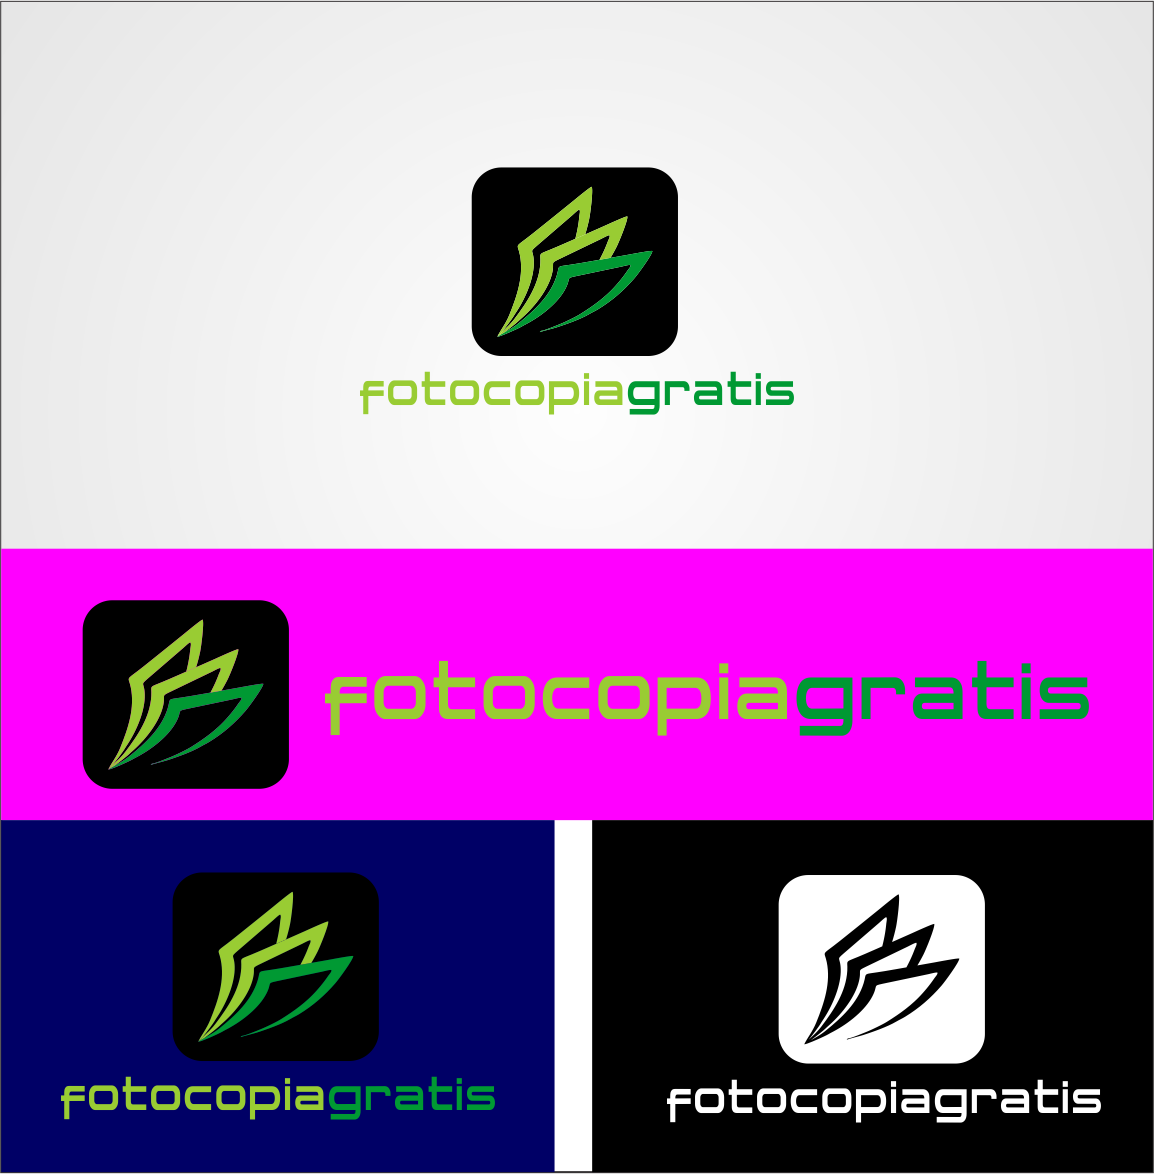 Logo Design by Agus Martoyo - Entry No. 138 in the Logo Design Contest Inspiring Logo Design for Fotocopiagratis.